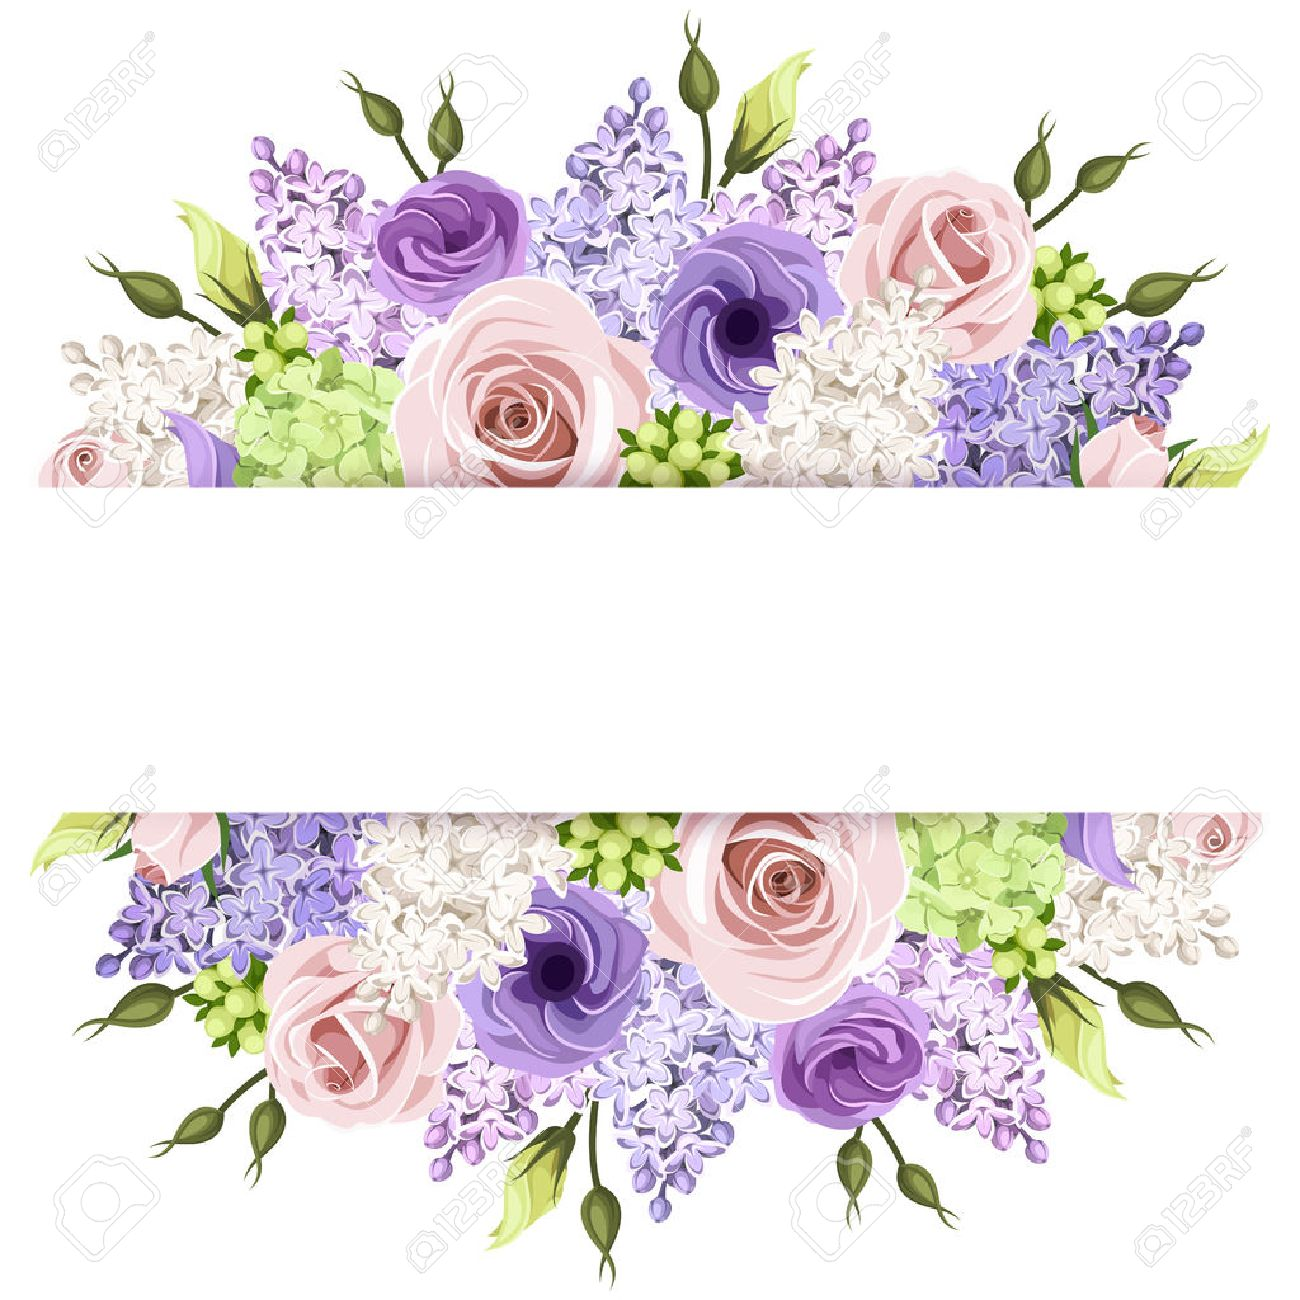 Background With Pink Purple And White Roses And Lilac Flowers